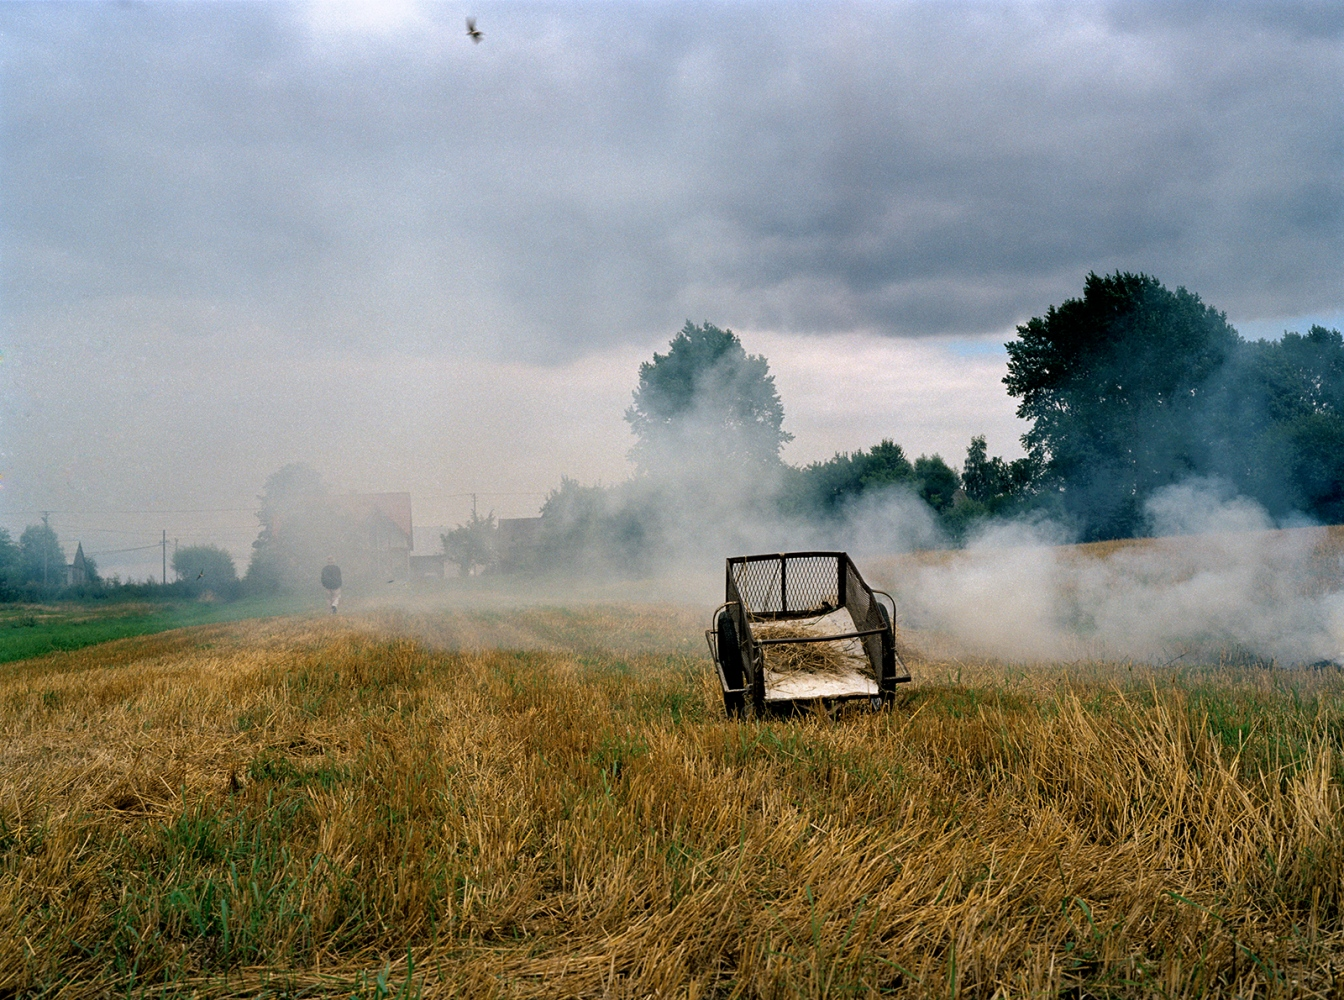 Art and Documentary Photography - Loading 22_smoky_field_small.jpg